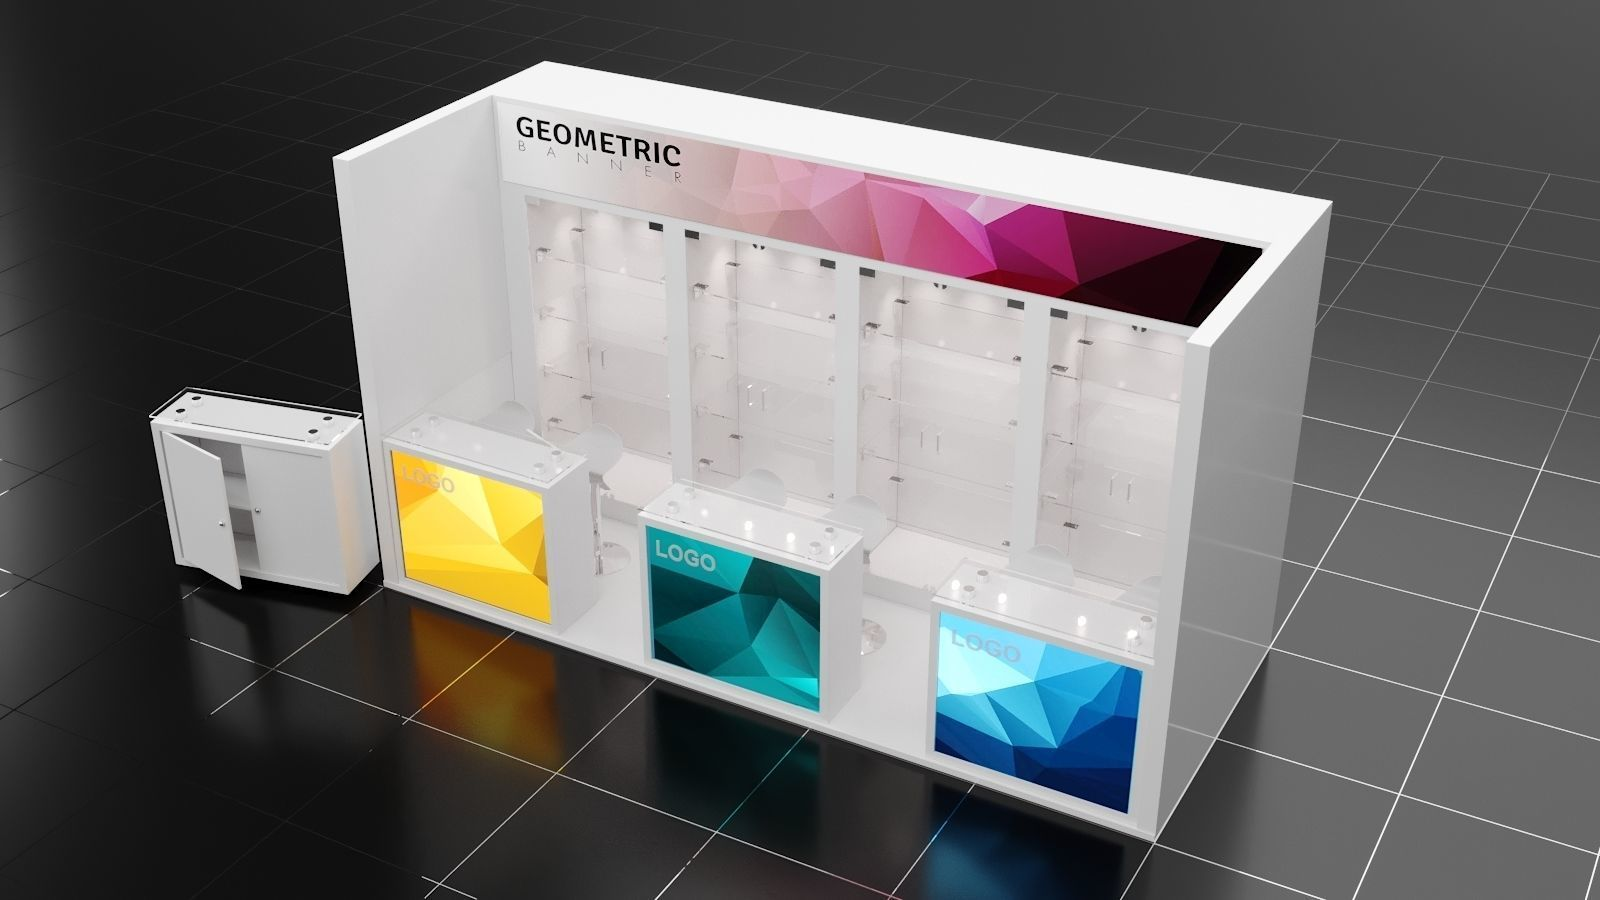 Exhibition Stall Materials : D mx m side open exhibition stall corona vray render